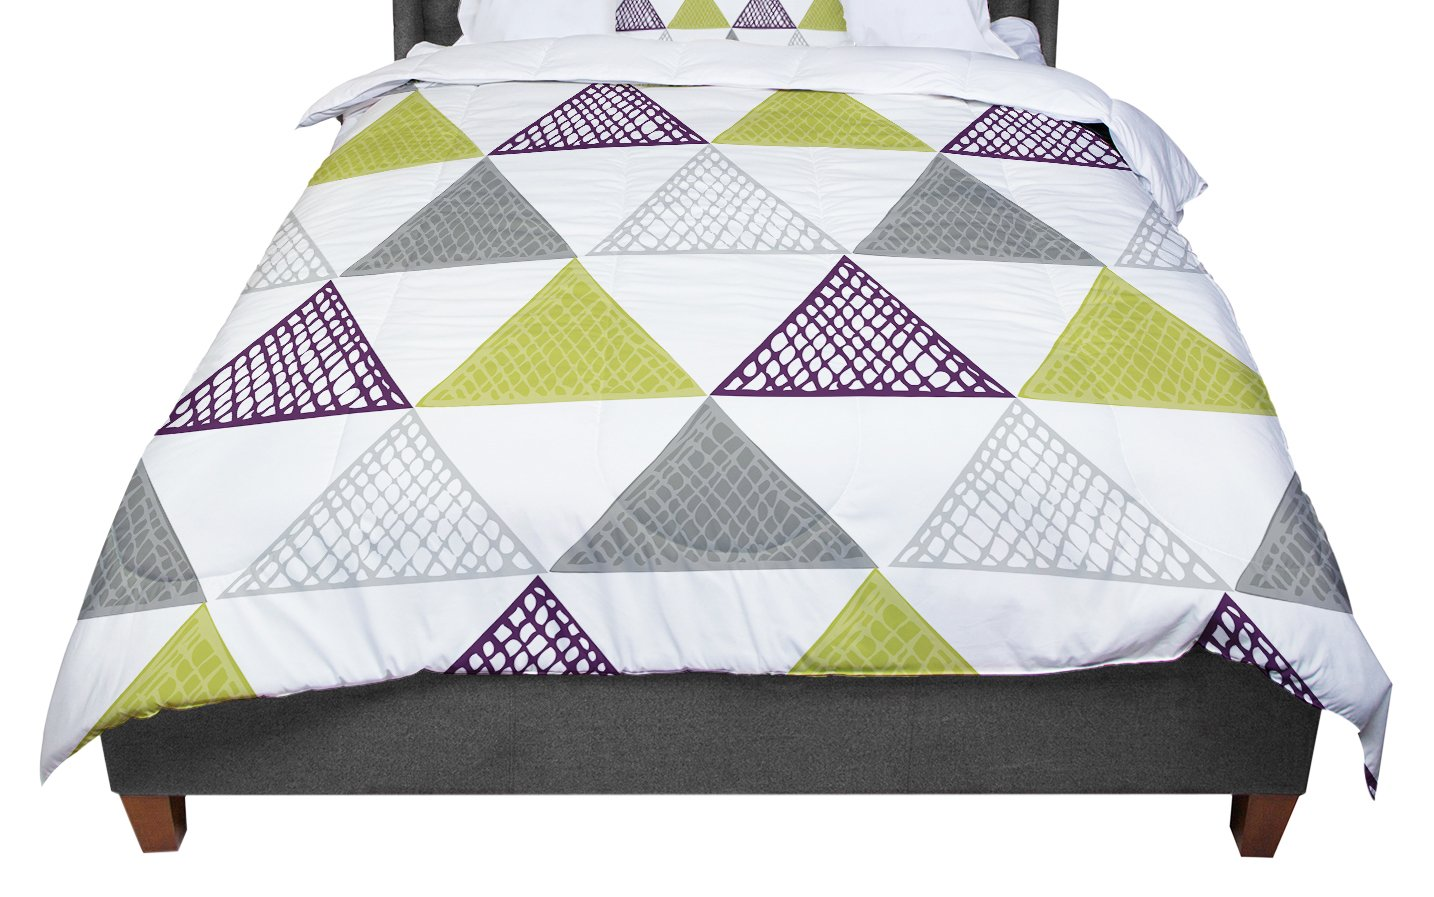 KESS InHouse Laurie Baars Textured Triangles Green Gray White Twin Comforter 68 X 88